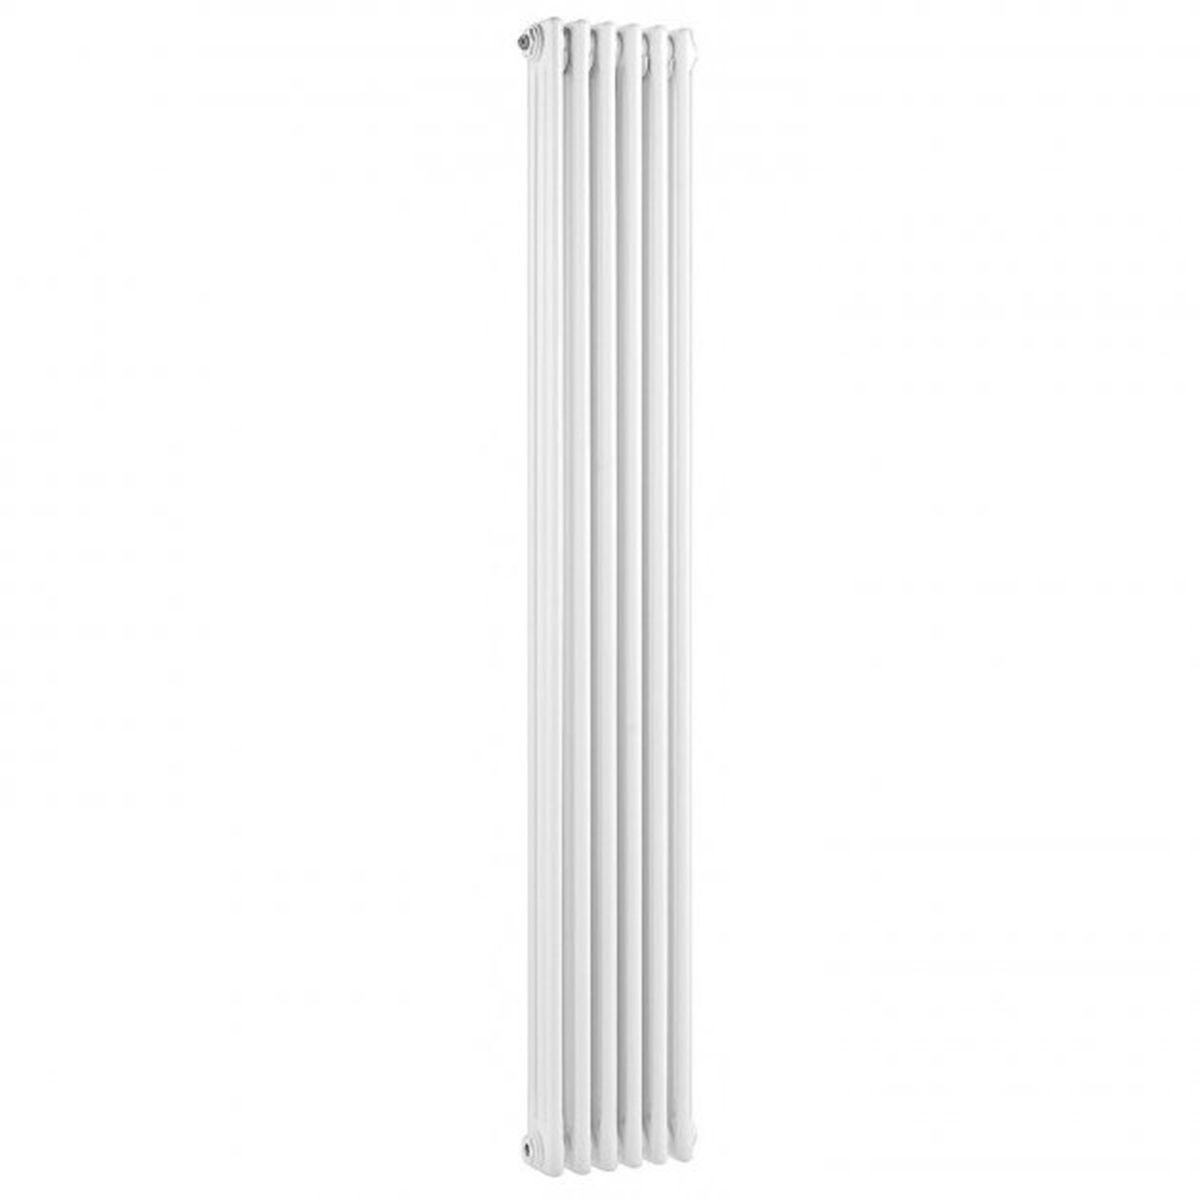 Front Line Rome Double-Panelled Vertical Radiator 1800 x 287mm